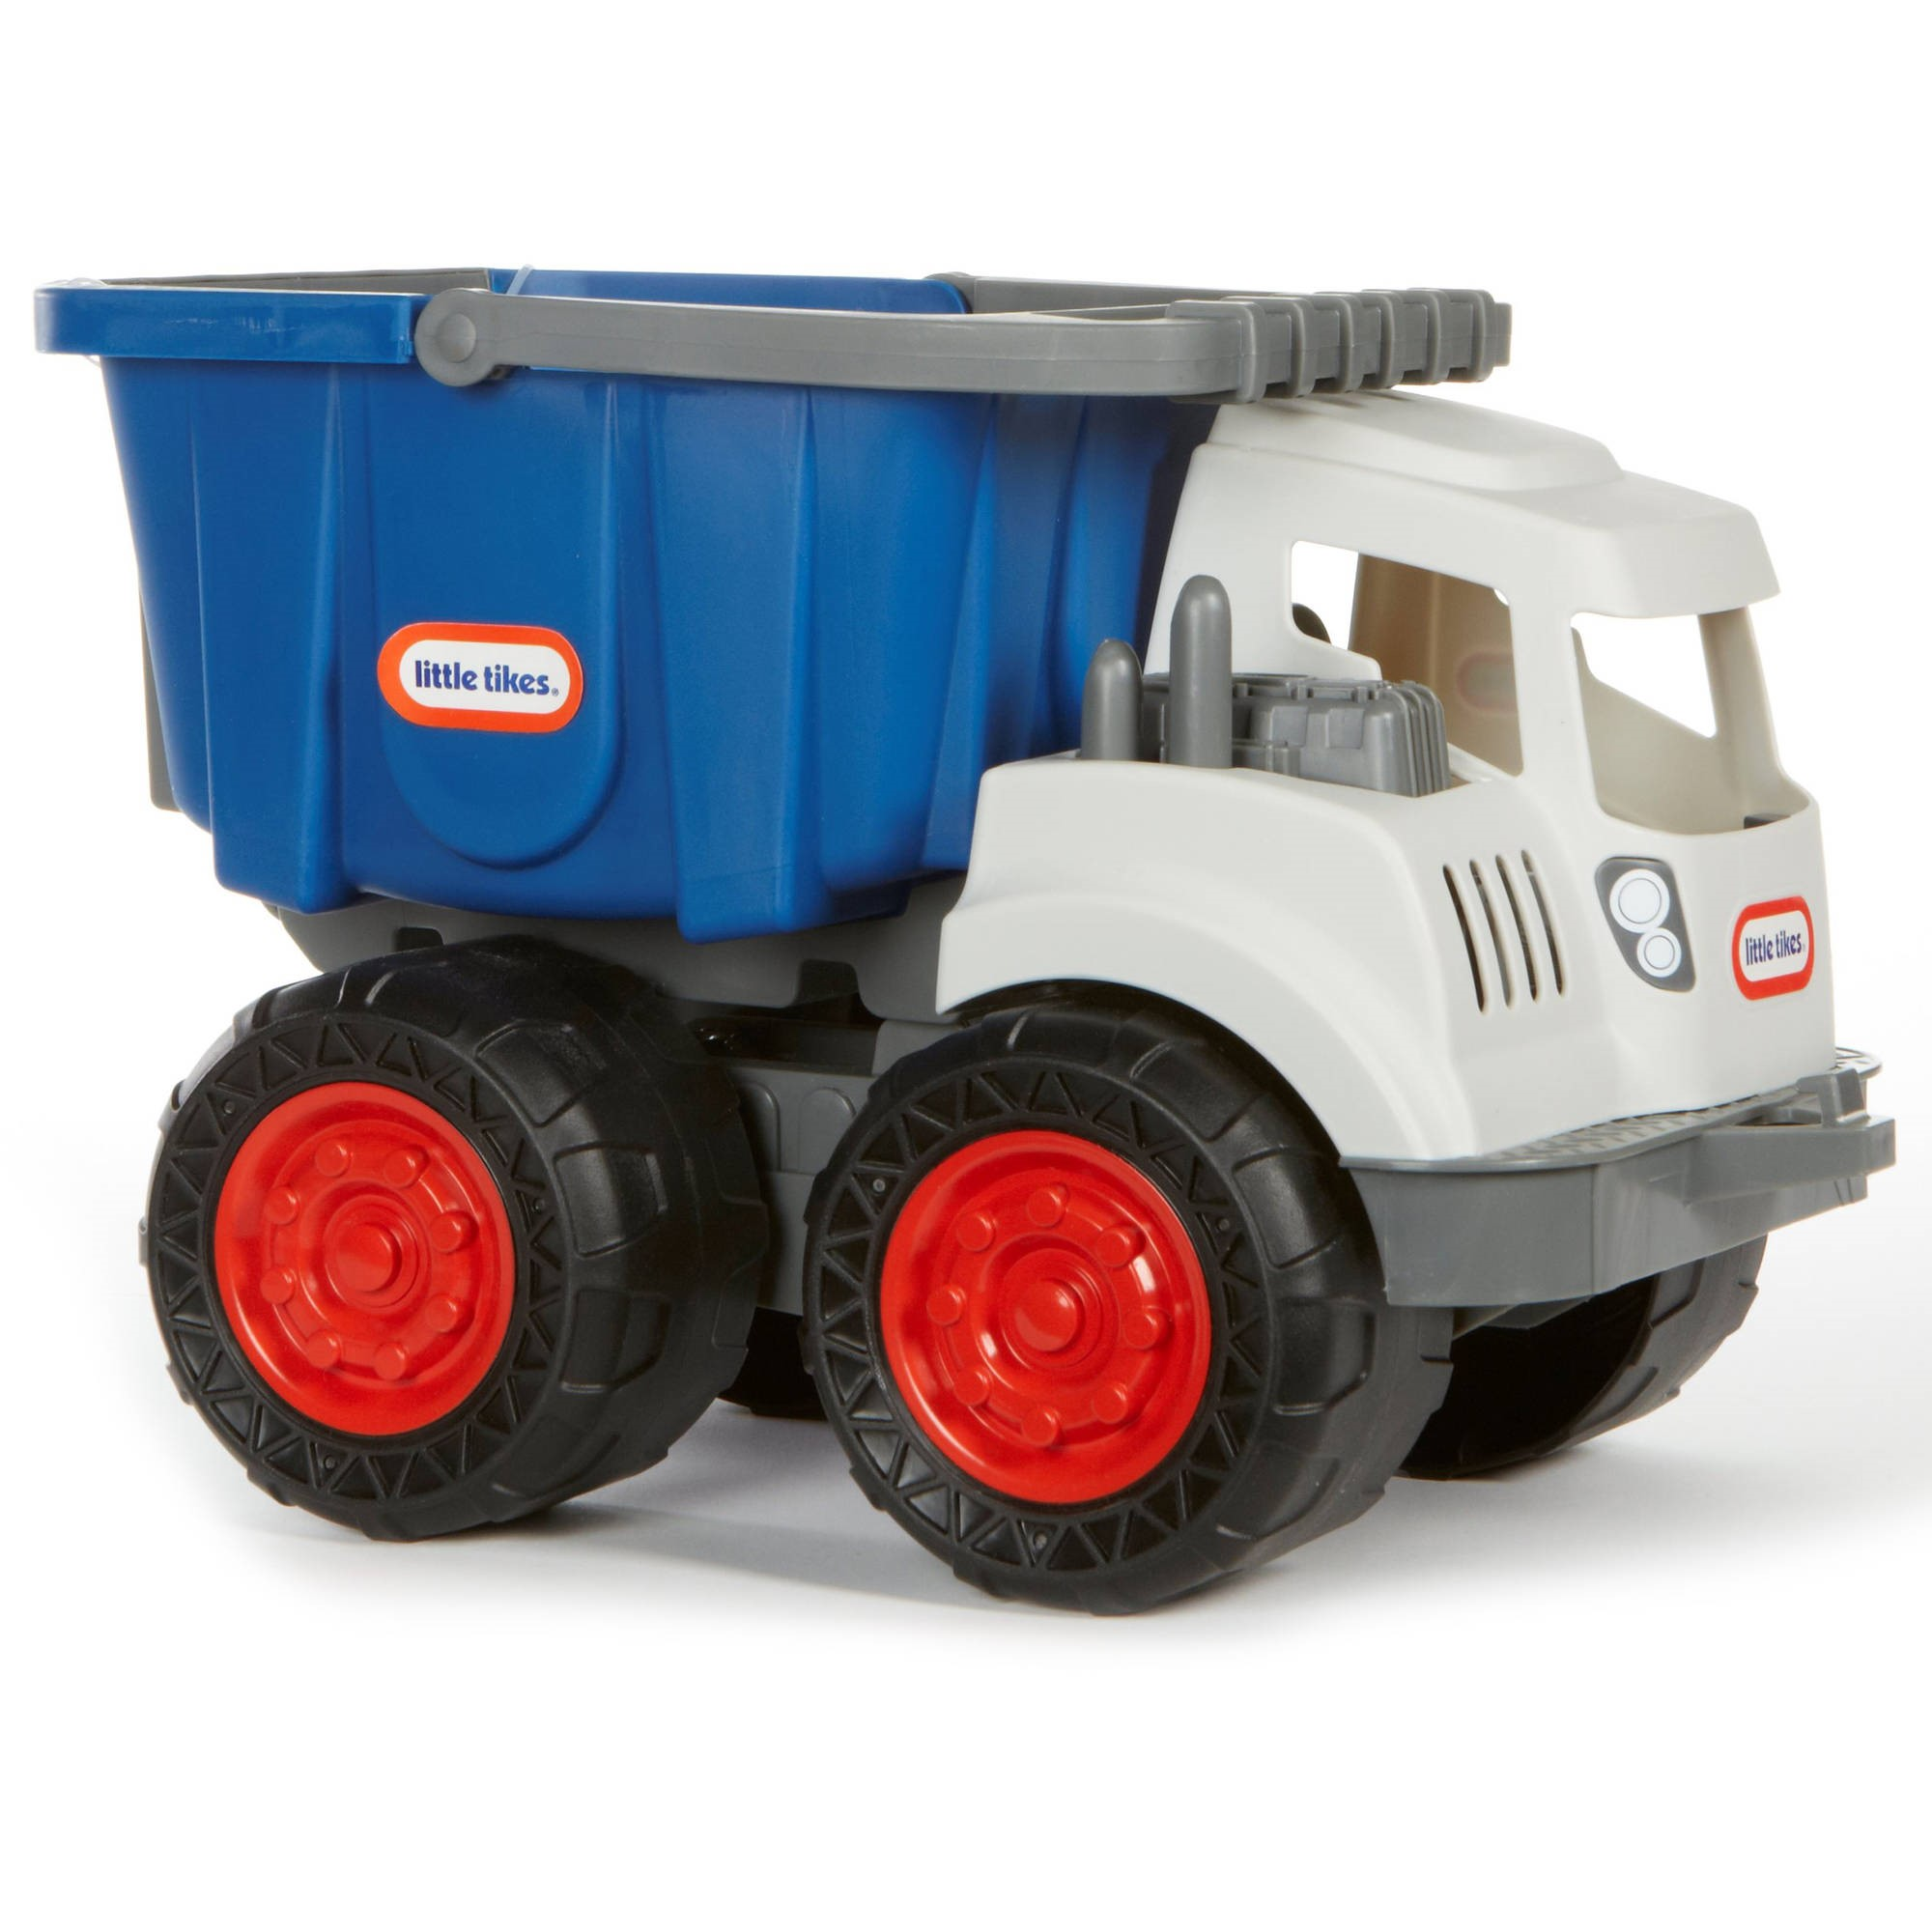 Little Tikes Dirt Diggers 2-in-1 Dump Truck by Little Tikes